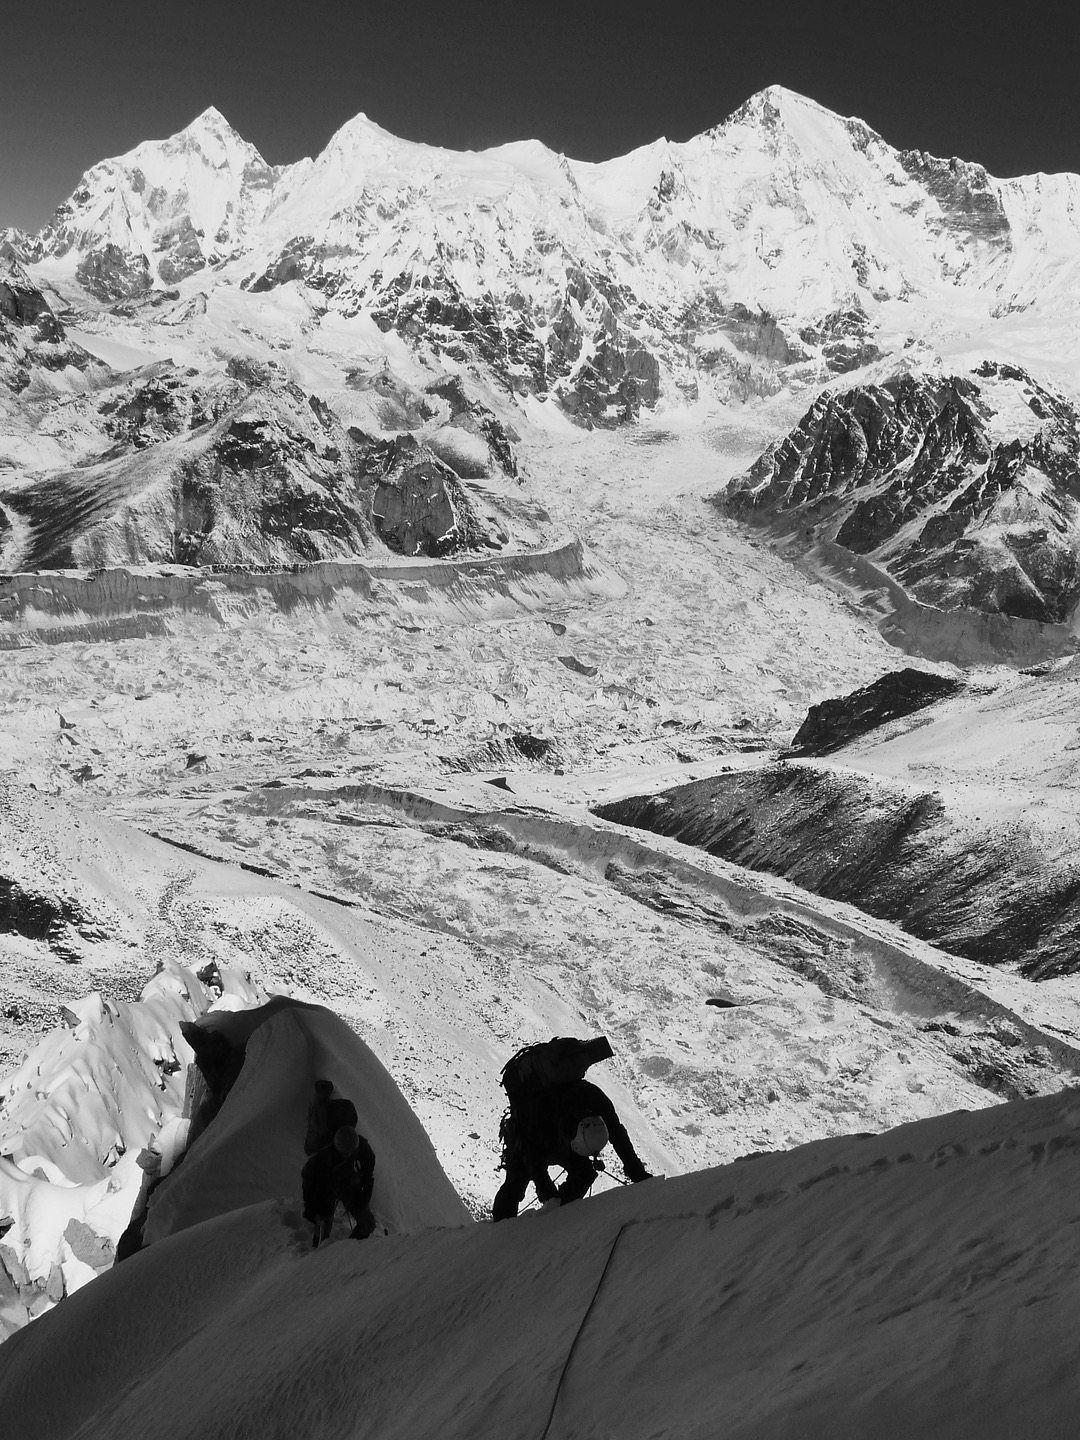 On the upper west ridge of Kangcho Nup, with the Gyubanare Glacier directly below. Behind and to the northwest lie the Ngozumba Glacier and, from left to right, Pasang Lhamu Chuli, the Nangpai Gosum peaks, and Cho Oyu.